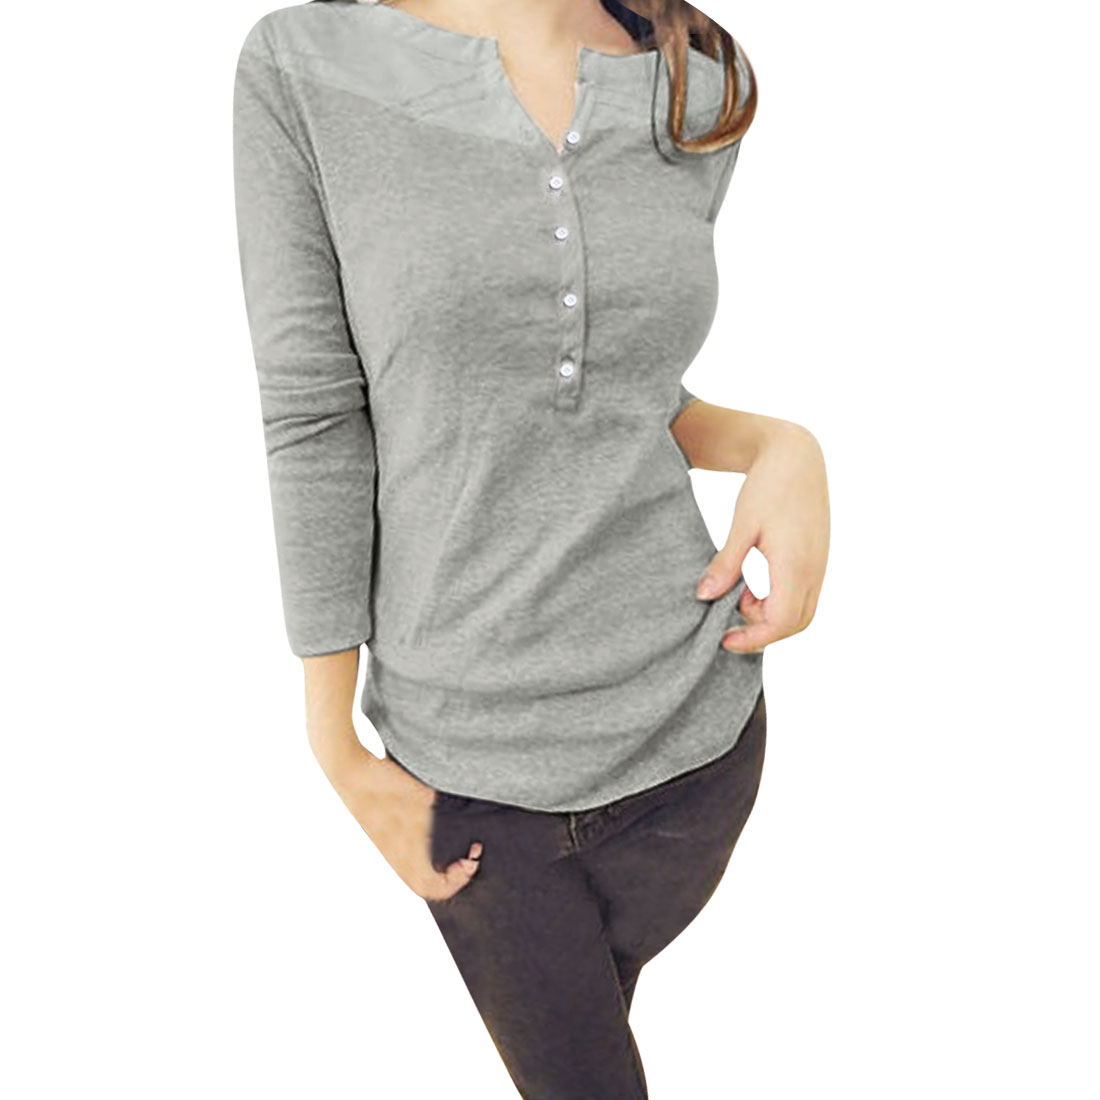 Ladies Light Gray Long Sleeve Pullover Casual Panel Top Shirt XS